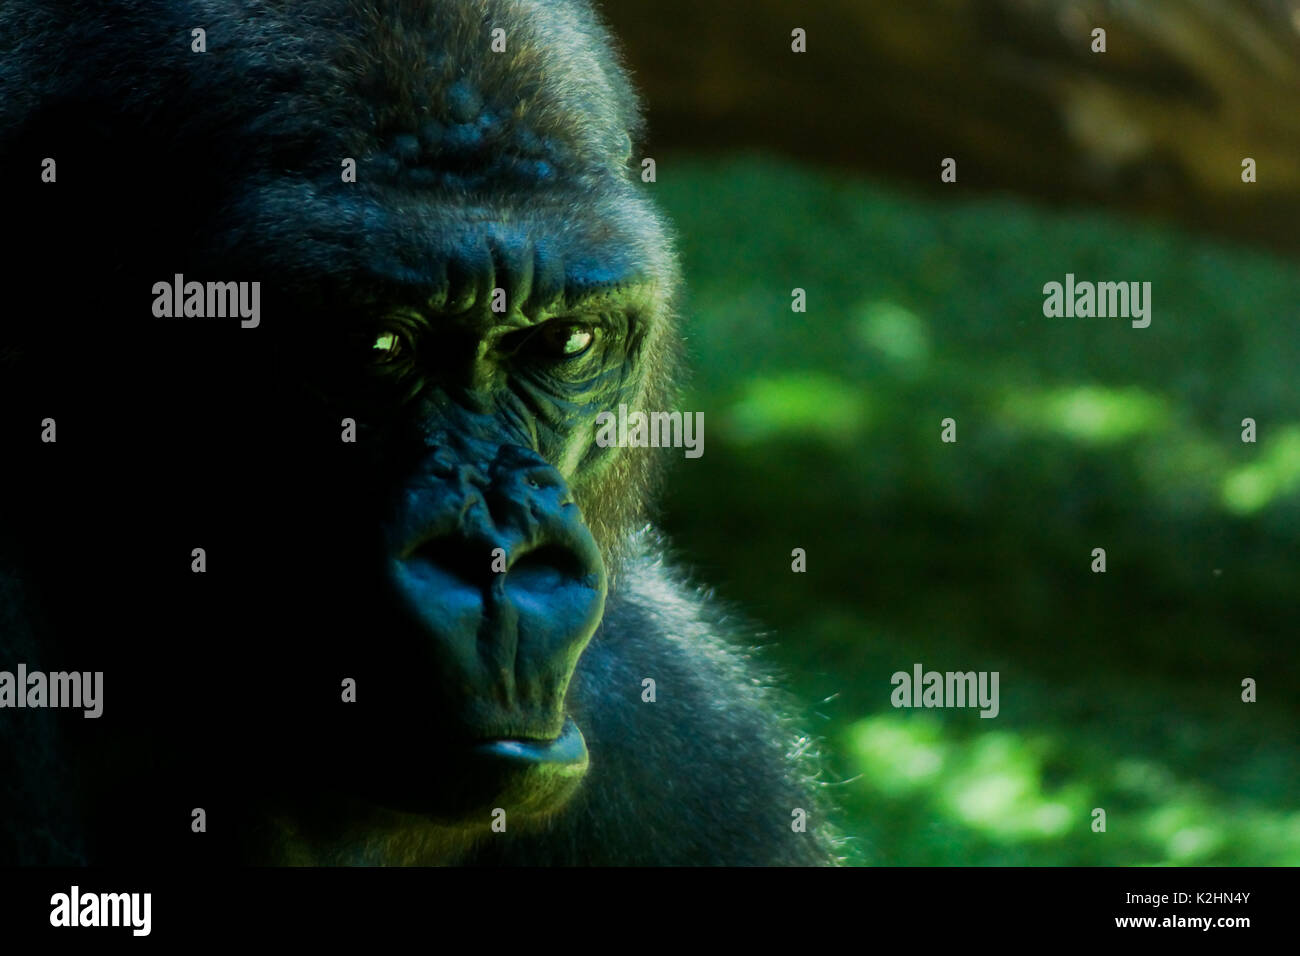 A gorilla displaying a sombre stare in Tenerife - Stock Image